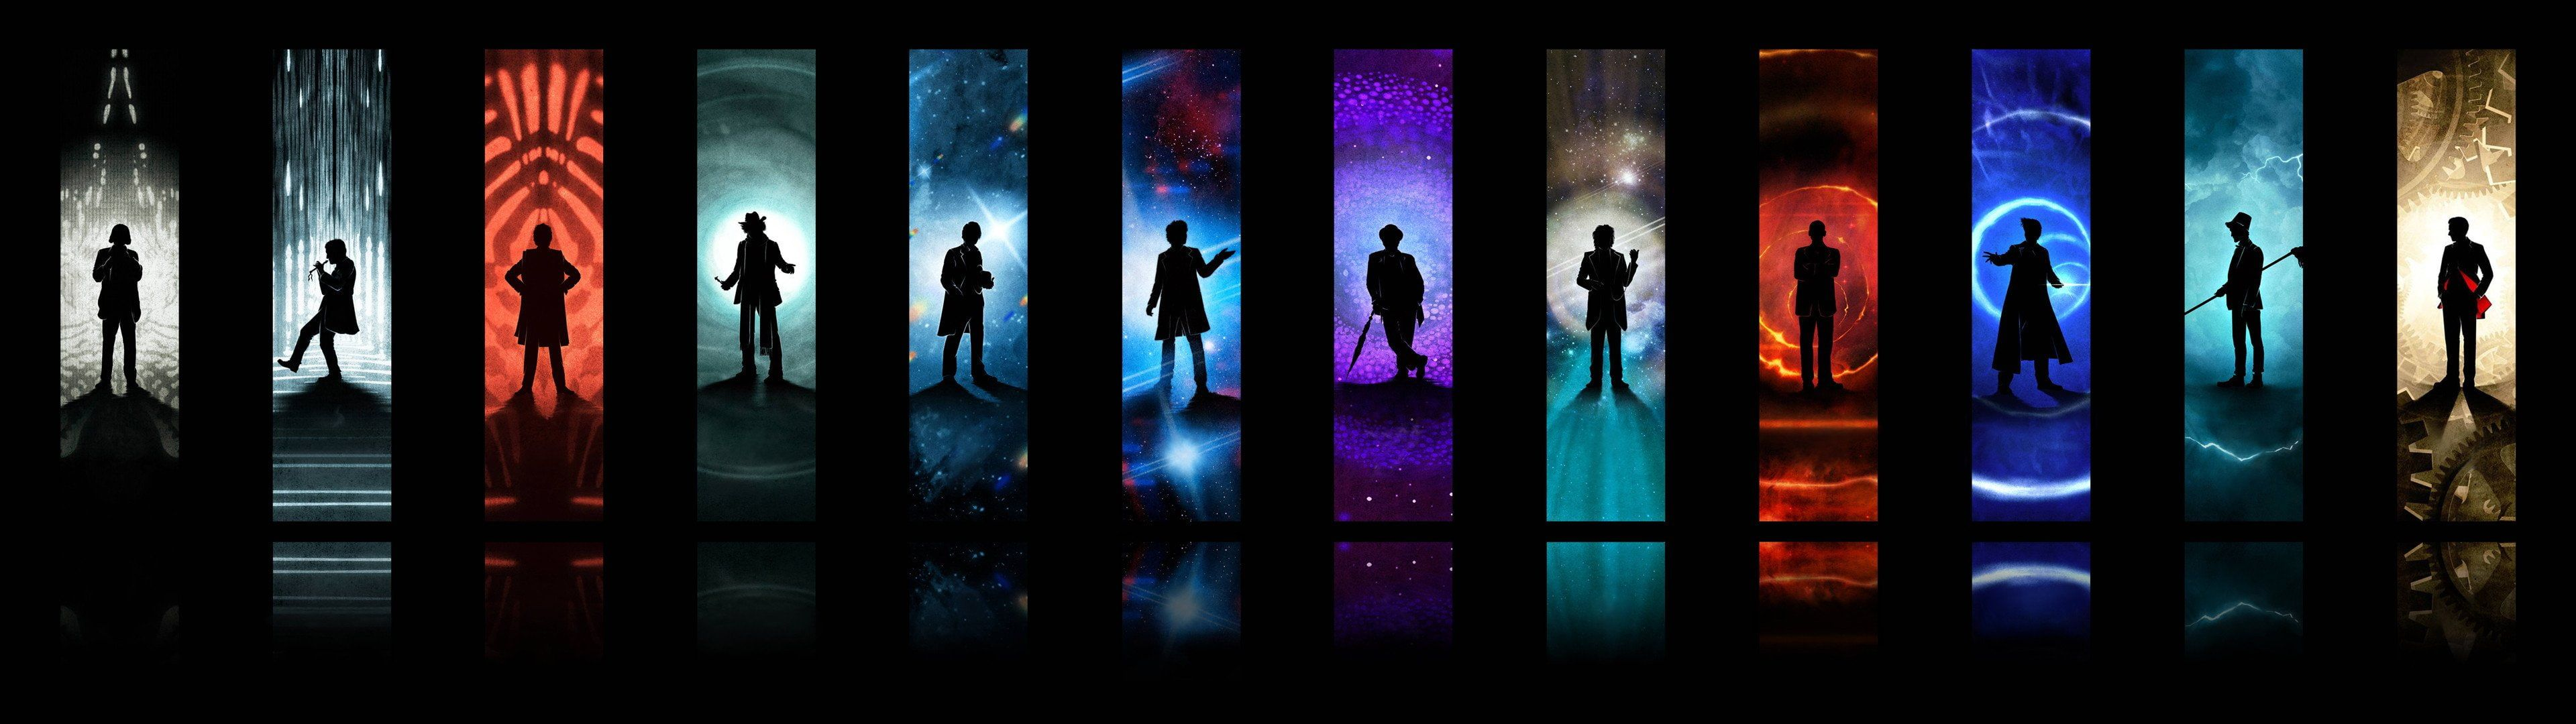 3840x1080 Px Adventure Bbc Comedy Doctor Drama Fi Futuristic Poster Sci Series Tardis Who In 2020 Dual Screen Wallpaper Hd Wallpaper Widescreen Wallpaper